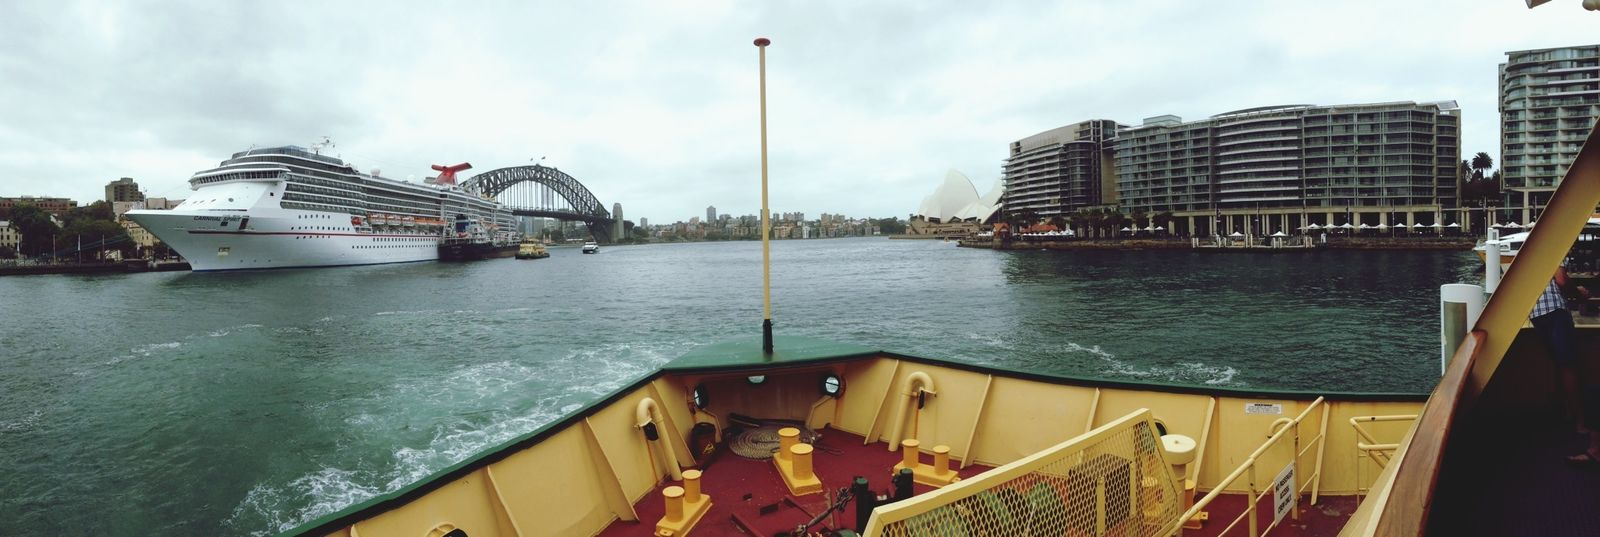 Took the ferry to manly and passed Sydney bridge and the Sydney Opera House on the way ?